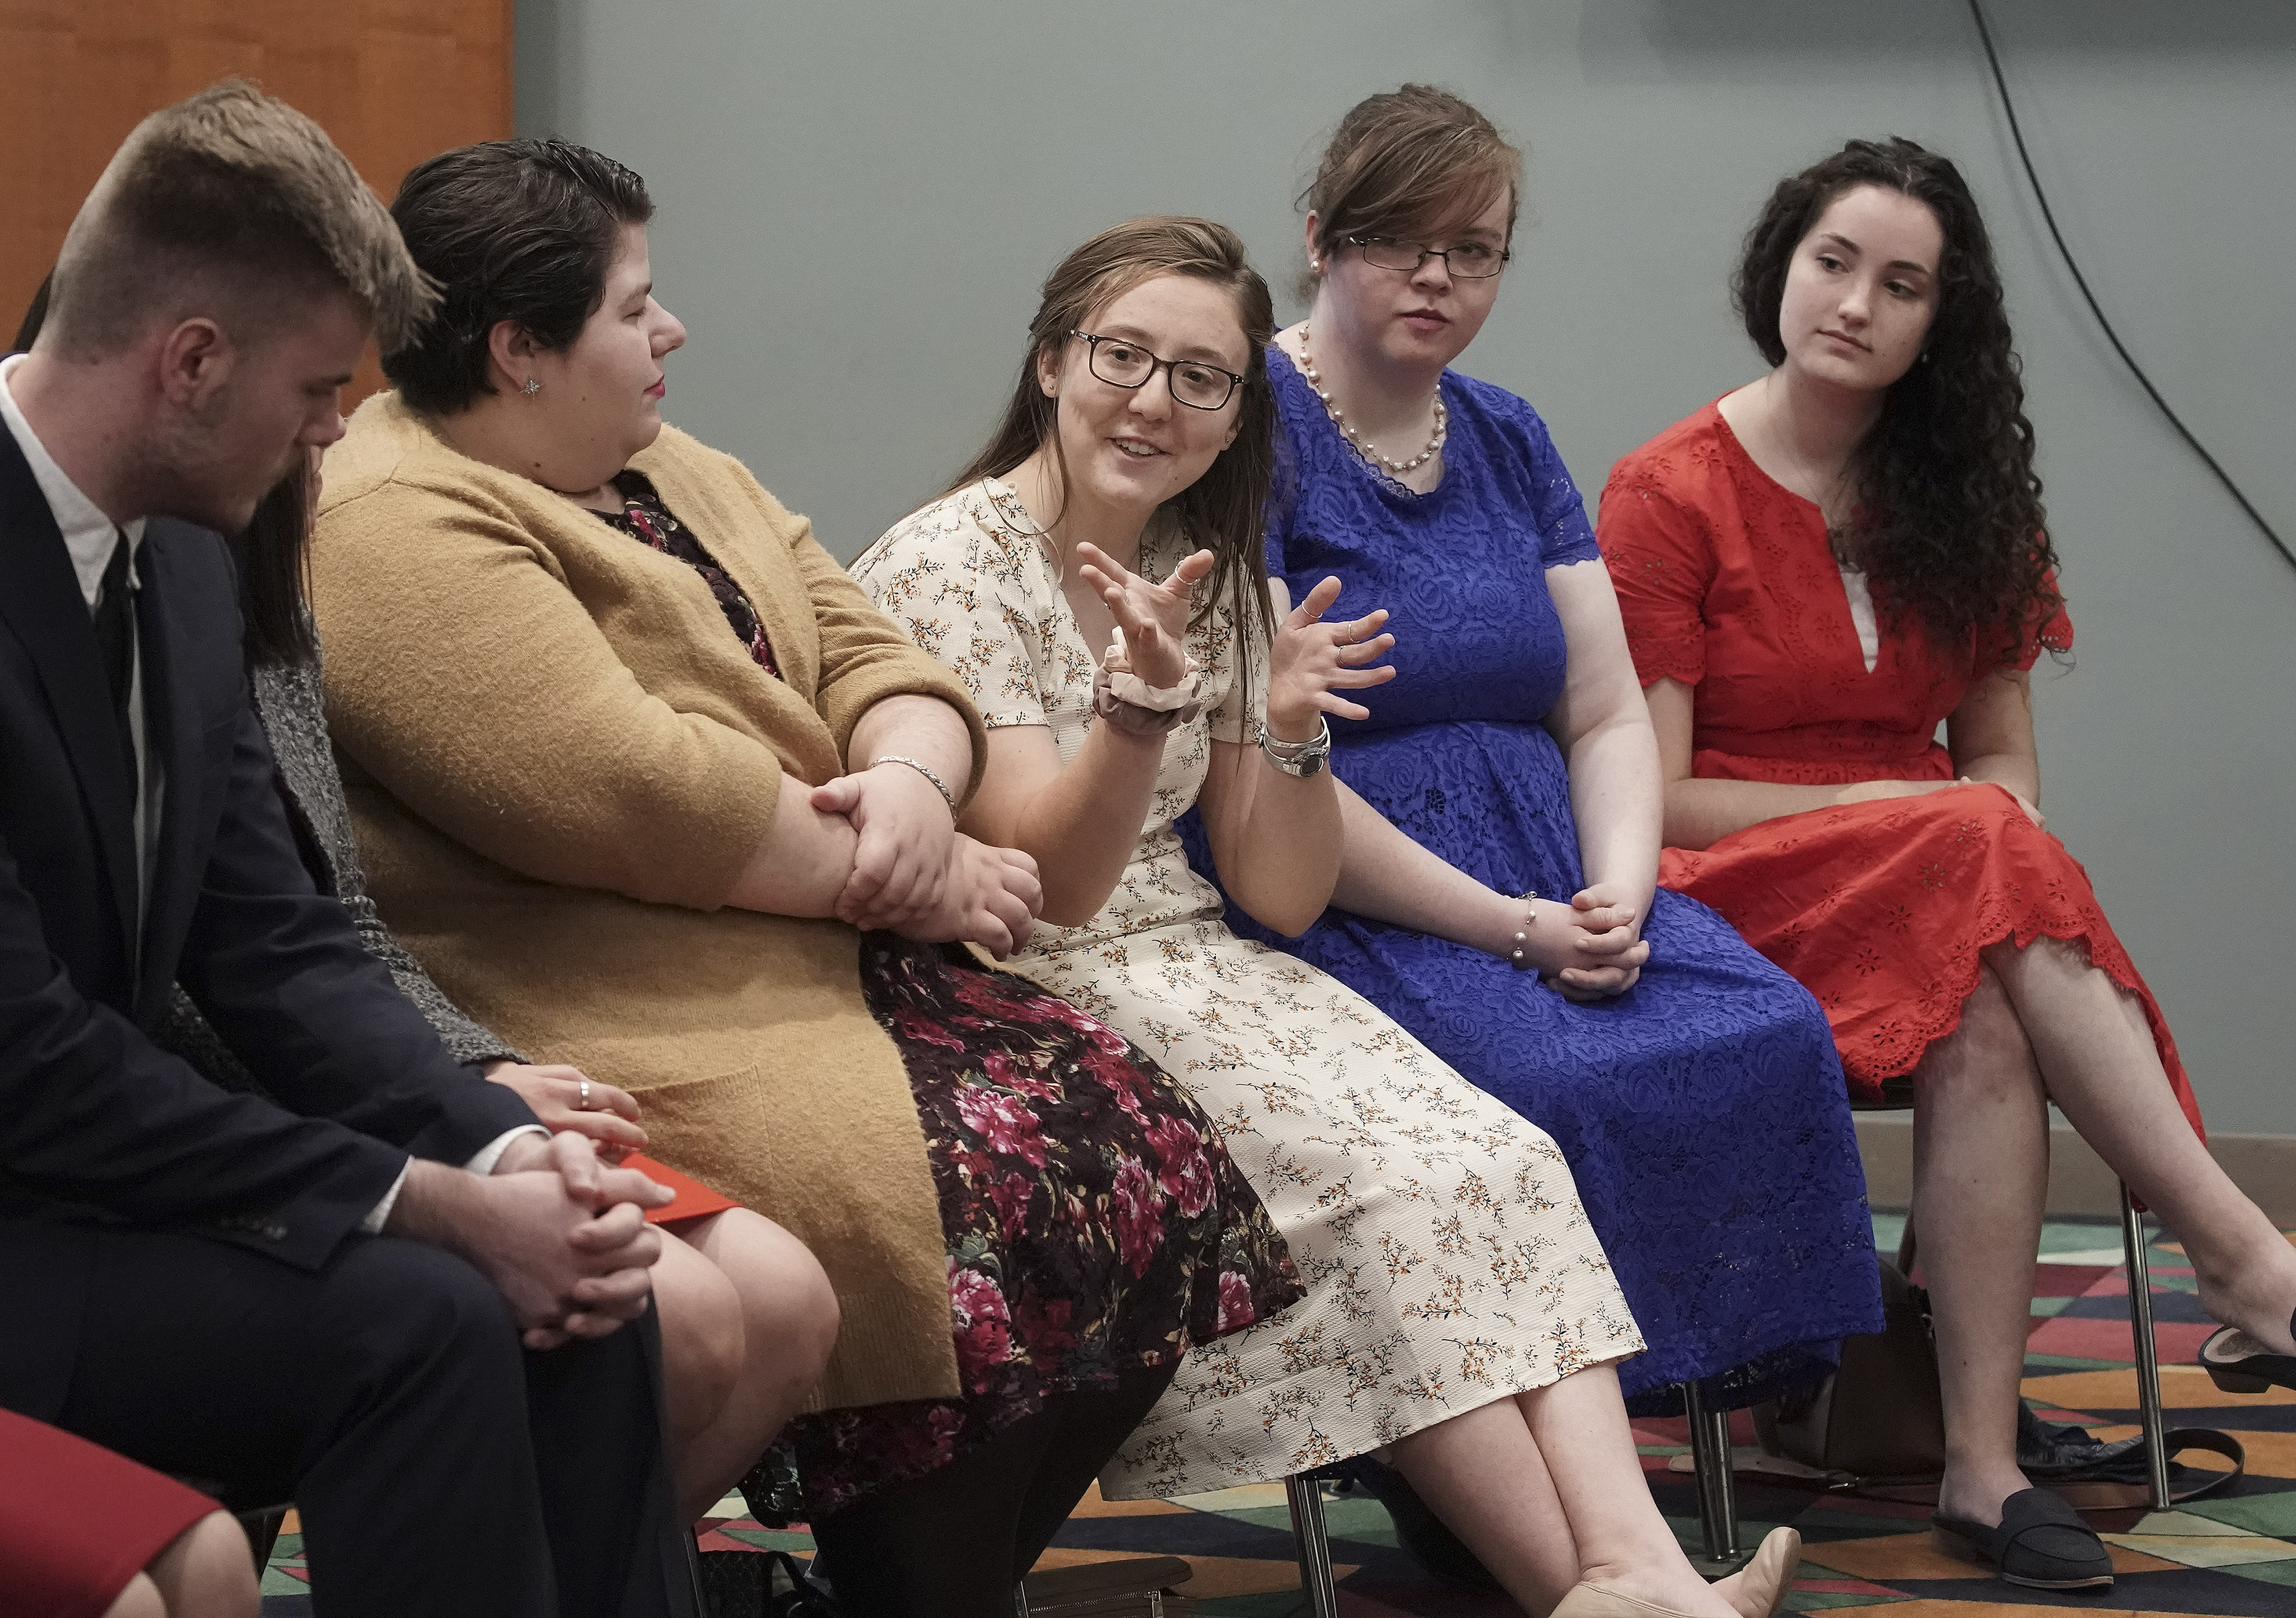 Annie Pollock and other youth meet with President M. Russell Ballard, acting president of the Quorum of the Twelve Apostles of The Church of Jesus Christ of Latter-day Saints, in Worcester, Massachusetts, on Sunday, Oct. 20, 2019.